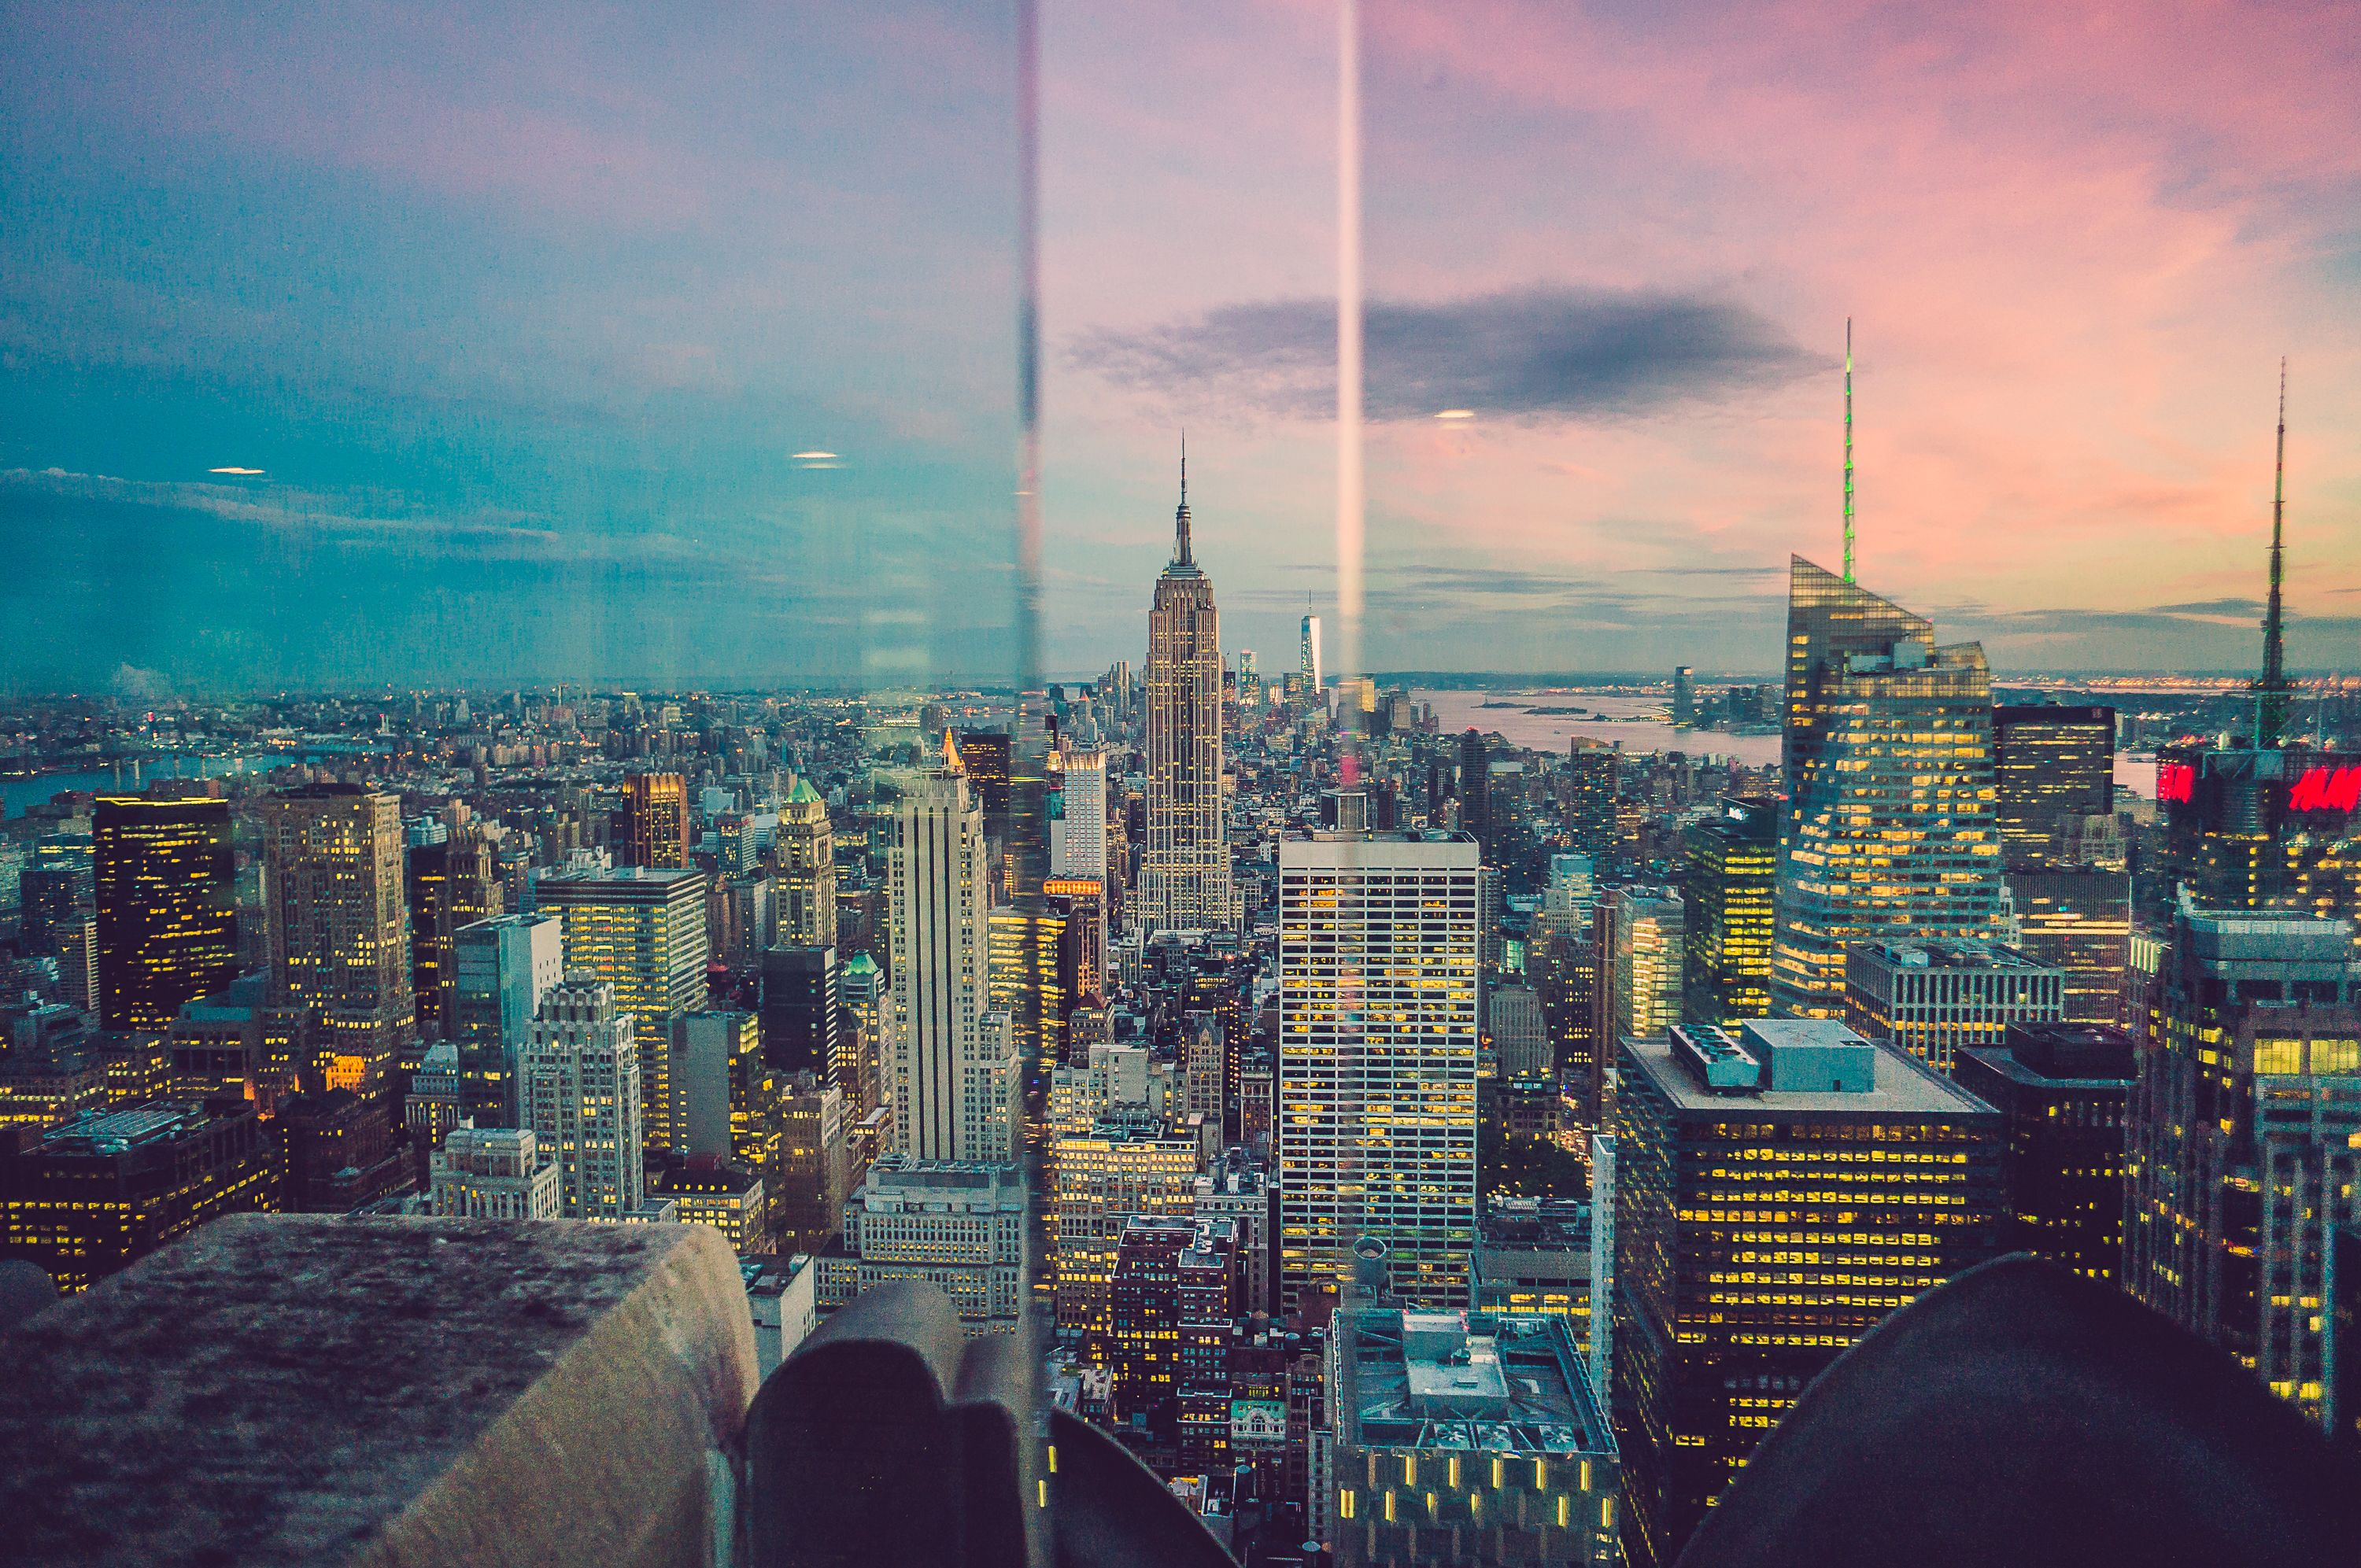 Manhattan, viewed from the Top of the Rock Observatory, trough the glass walls ...